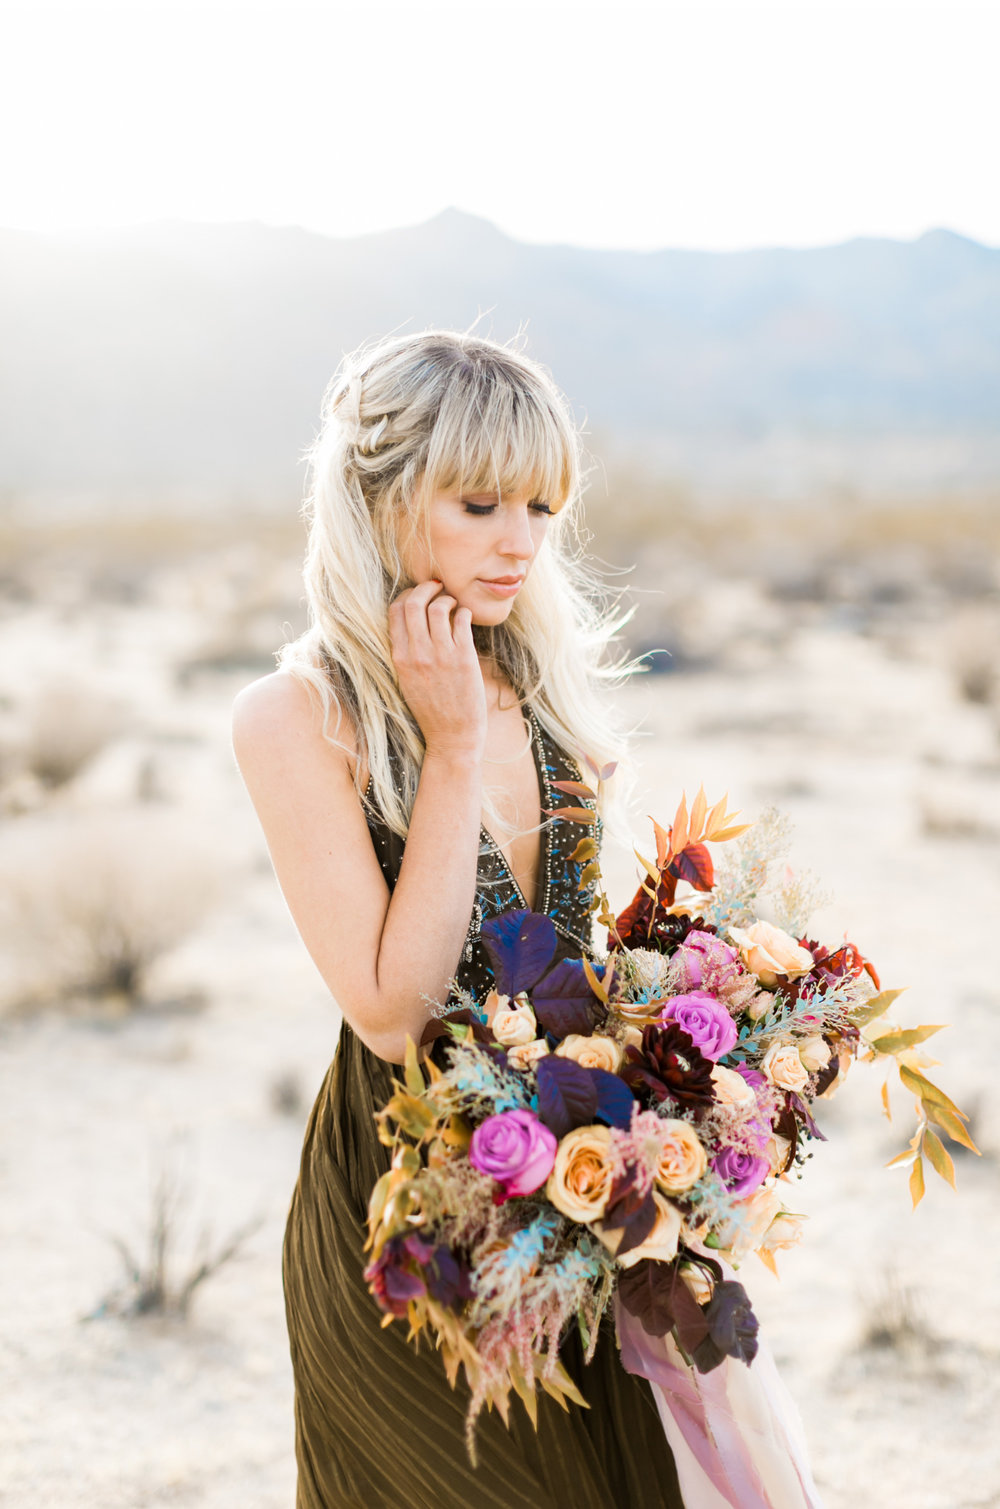 Southern-California-Elopement-Natalie-Schutt-Photography-Joshua-Tree_02.jpg